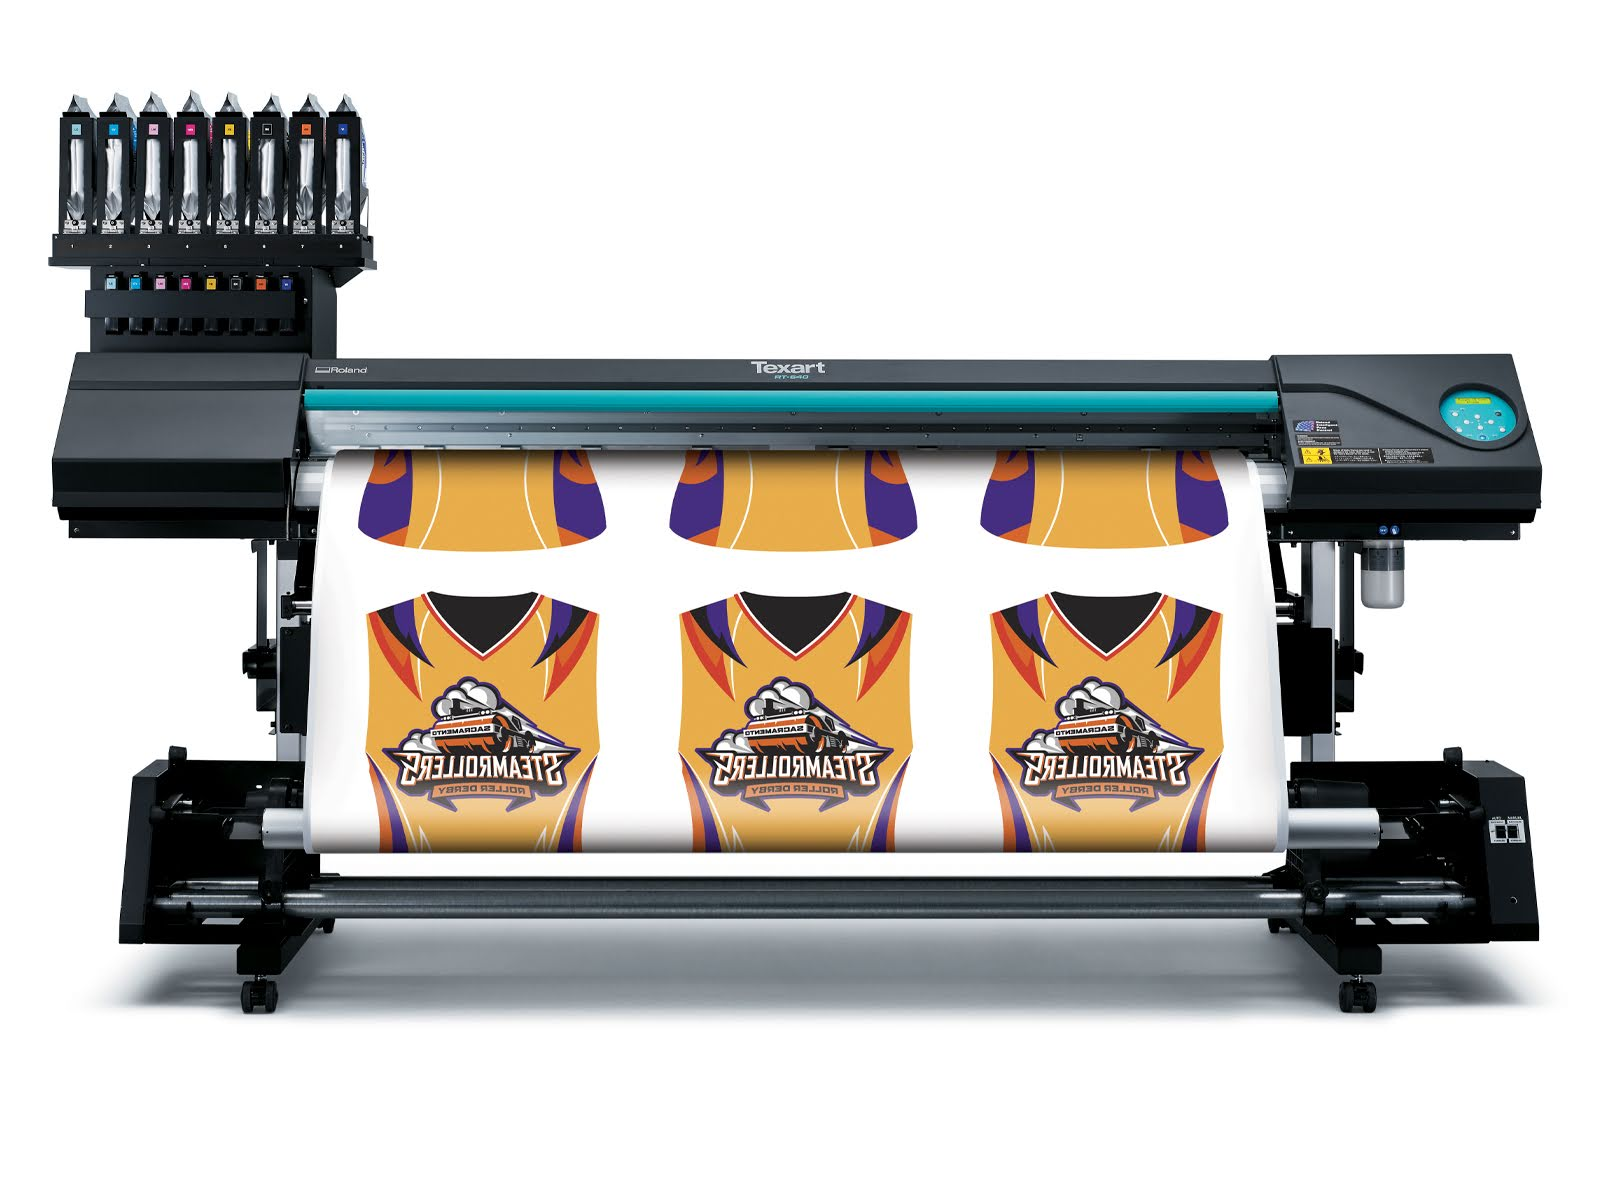 Digital textile printing isn't an all-or-nothing game.